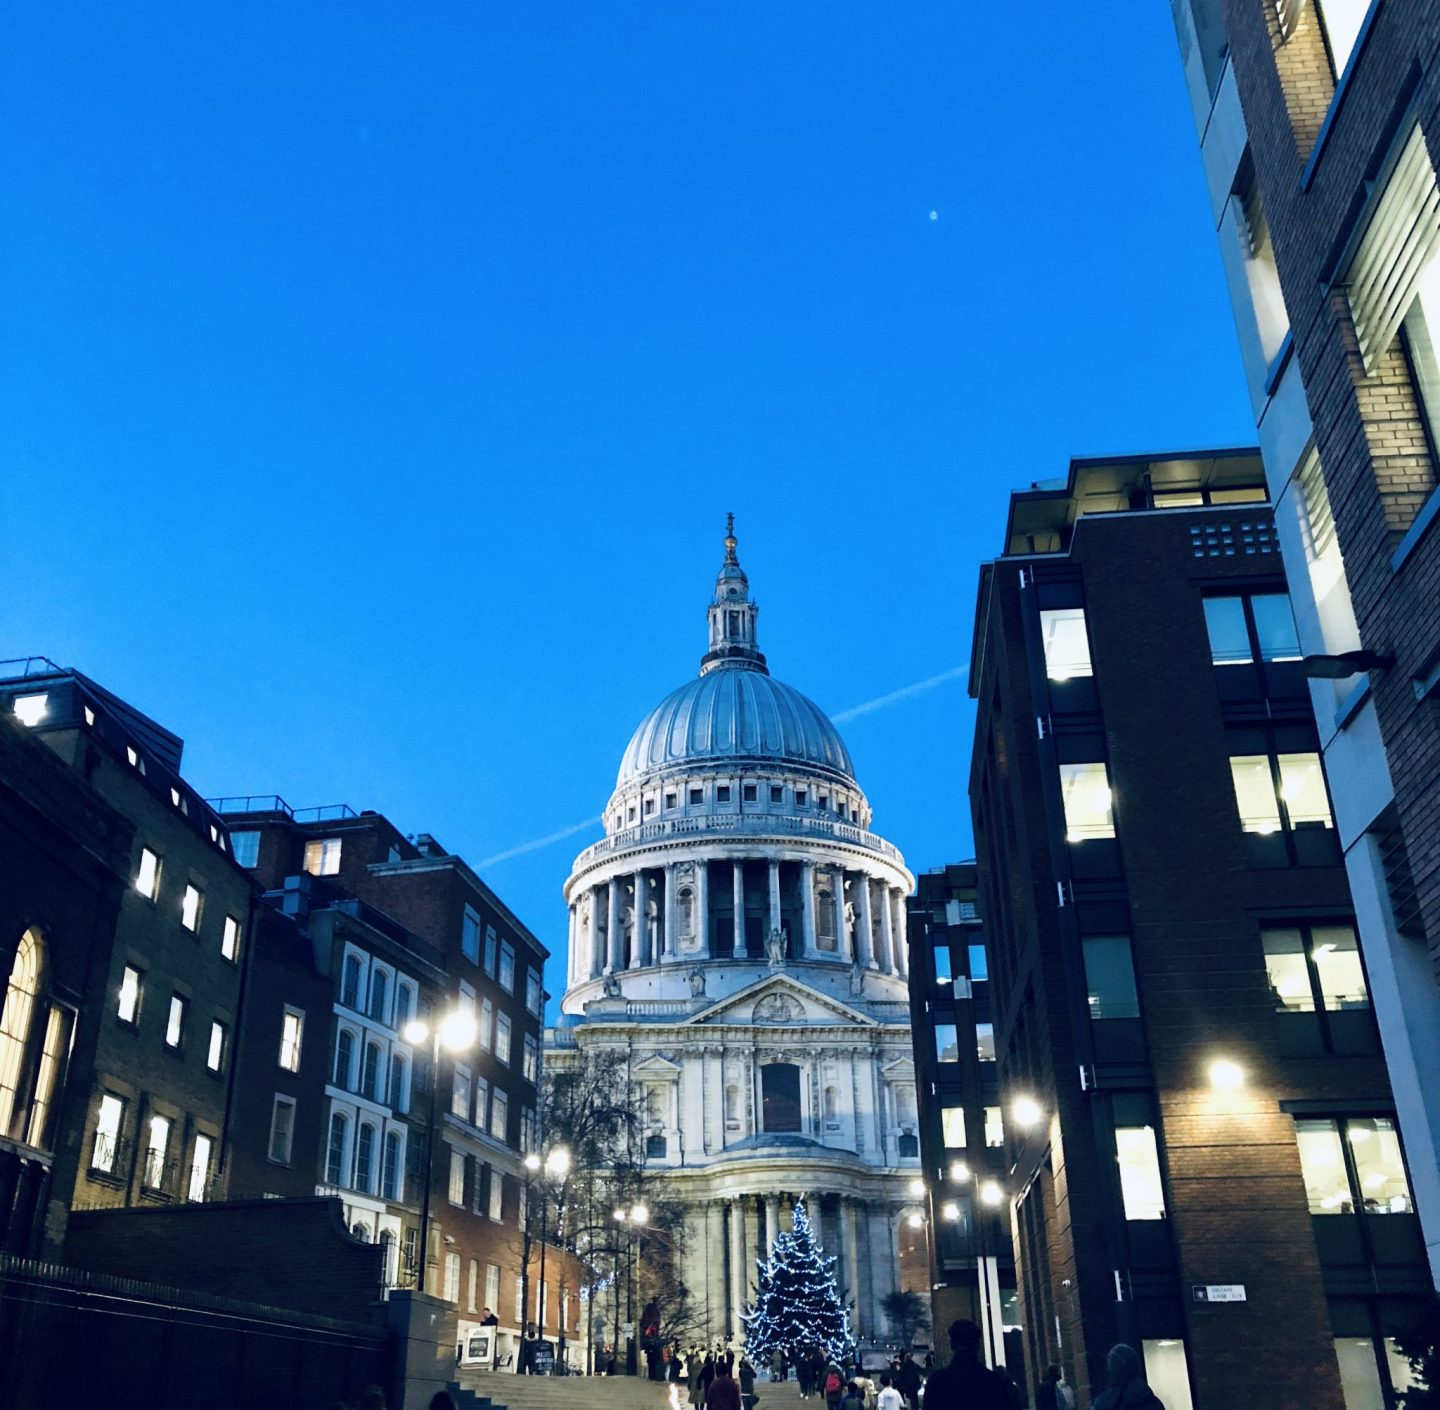 St Pauls Cathedral at night, London